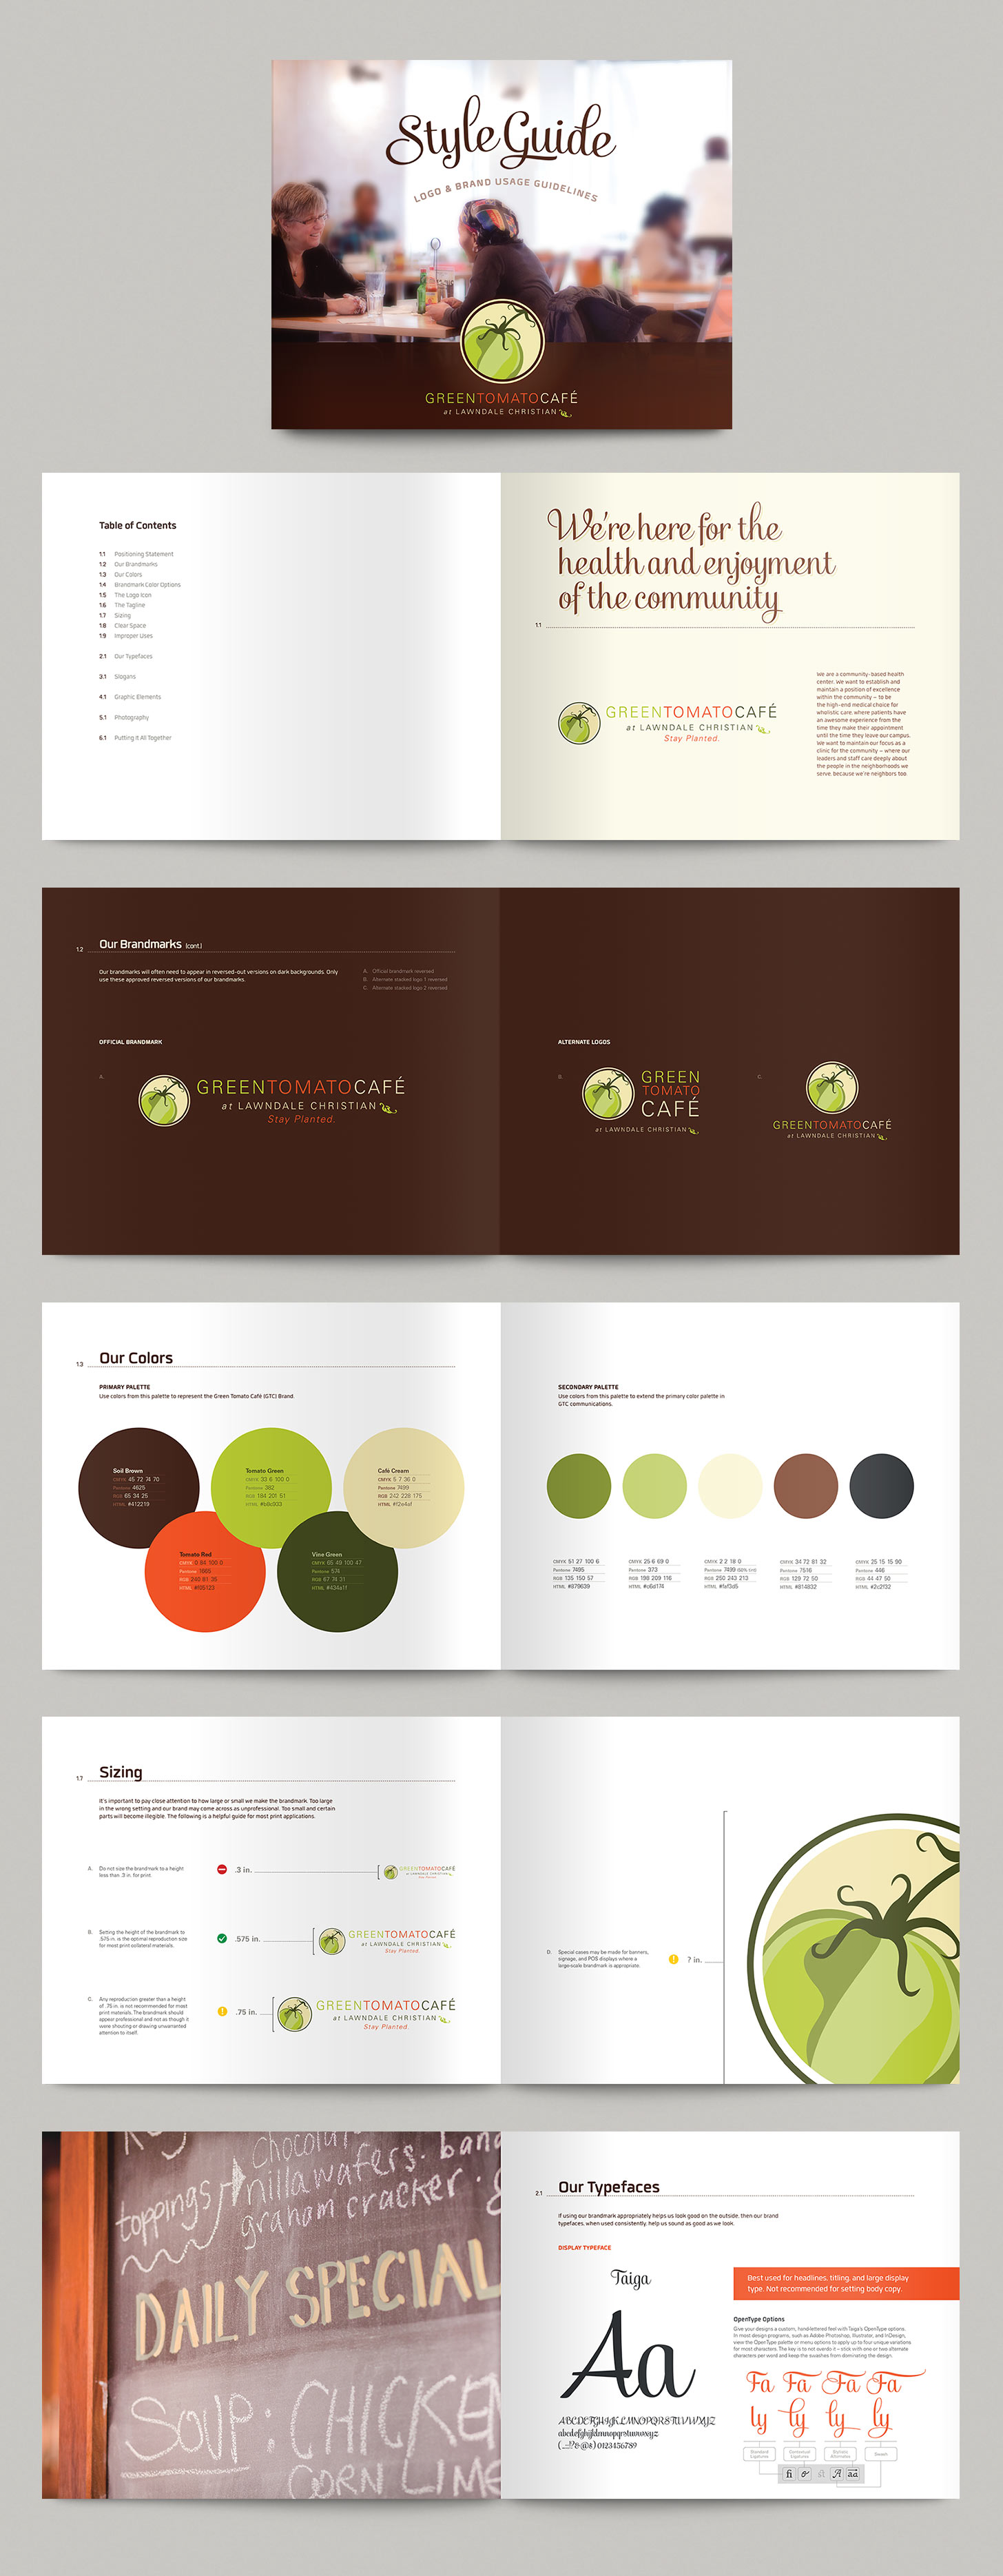 Selected spreads from Green Tomato Café's brand style guide. Image copyright Jeff Miller, HellothisisJeff Design LLC